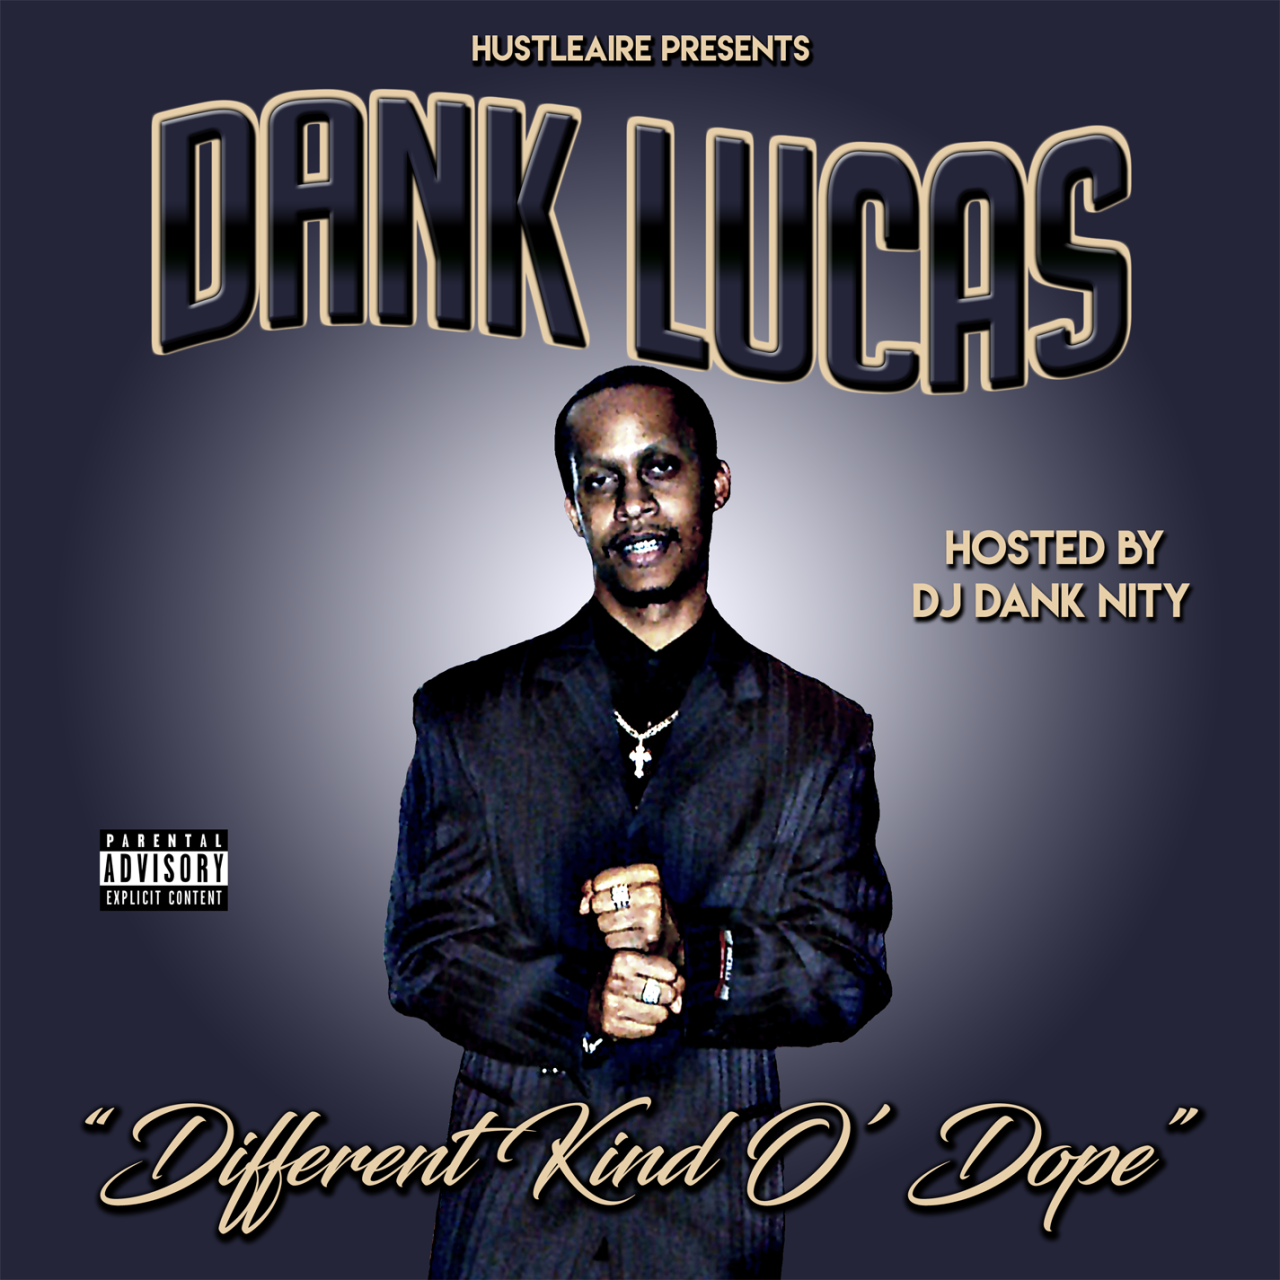 Dank Lucas – Different Kind O' Dope